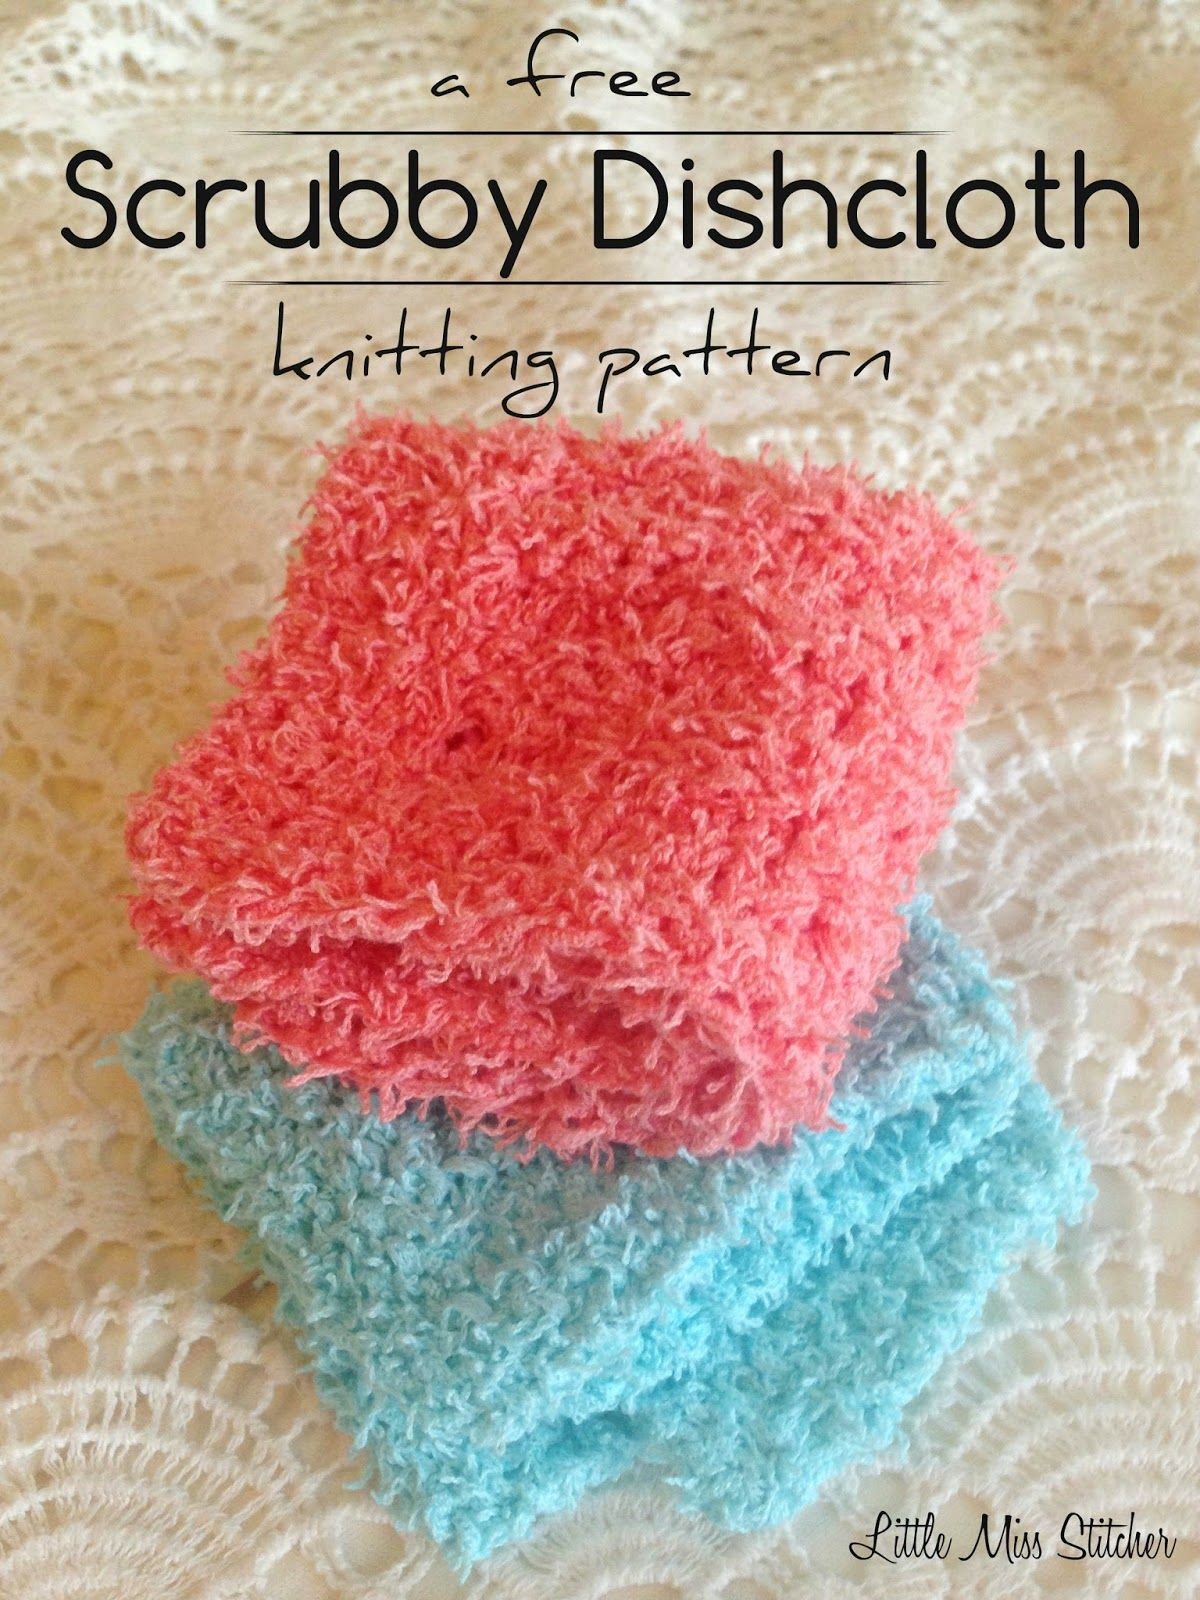 A FREE Scrubby Dishcloth Pattern! I love the texture this creates ...